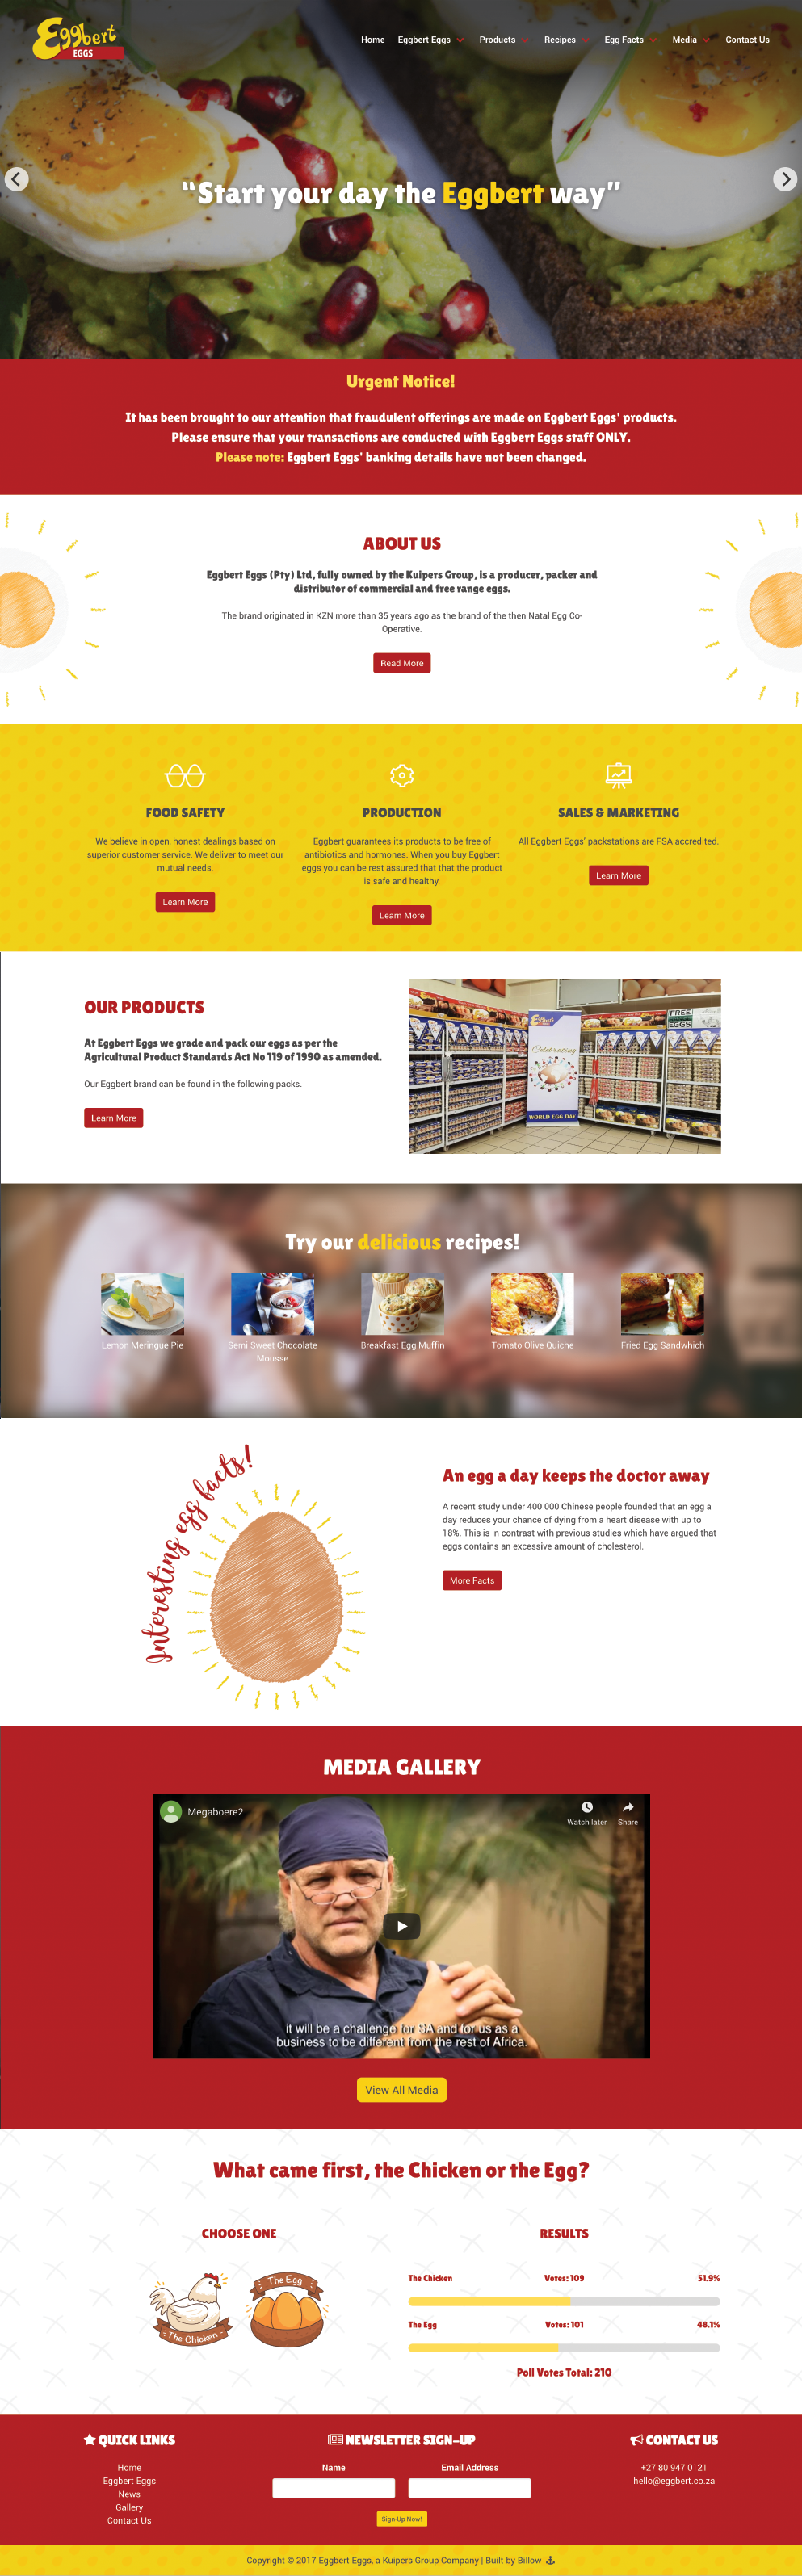 Eggbert Eggs website by Billow